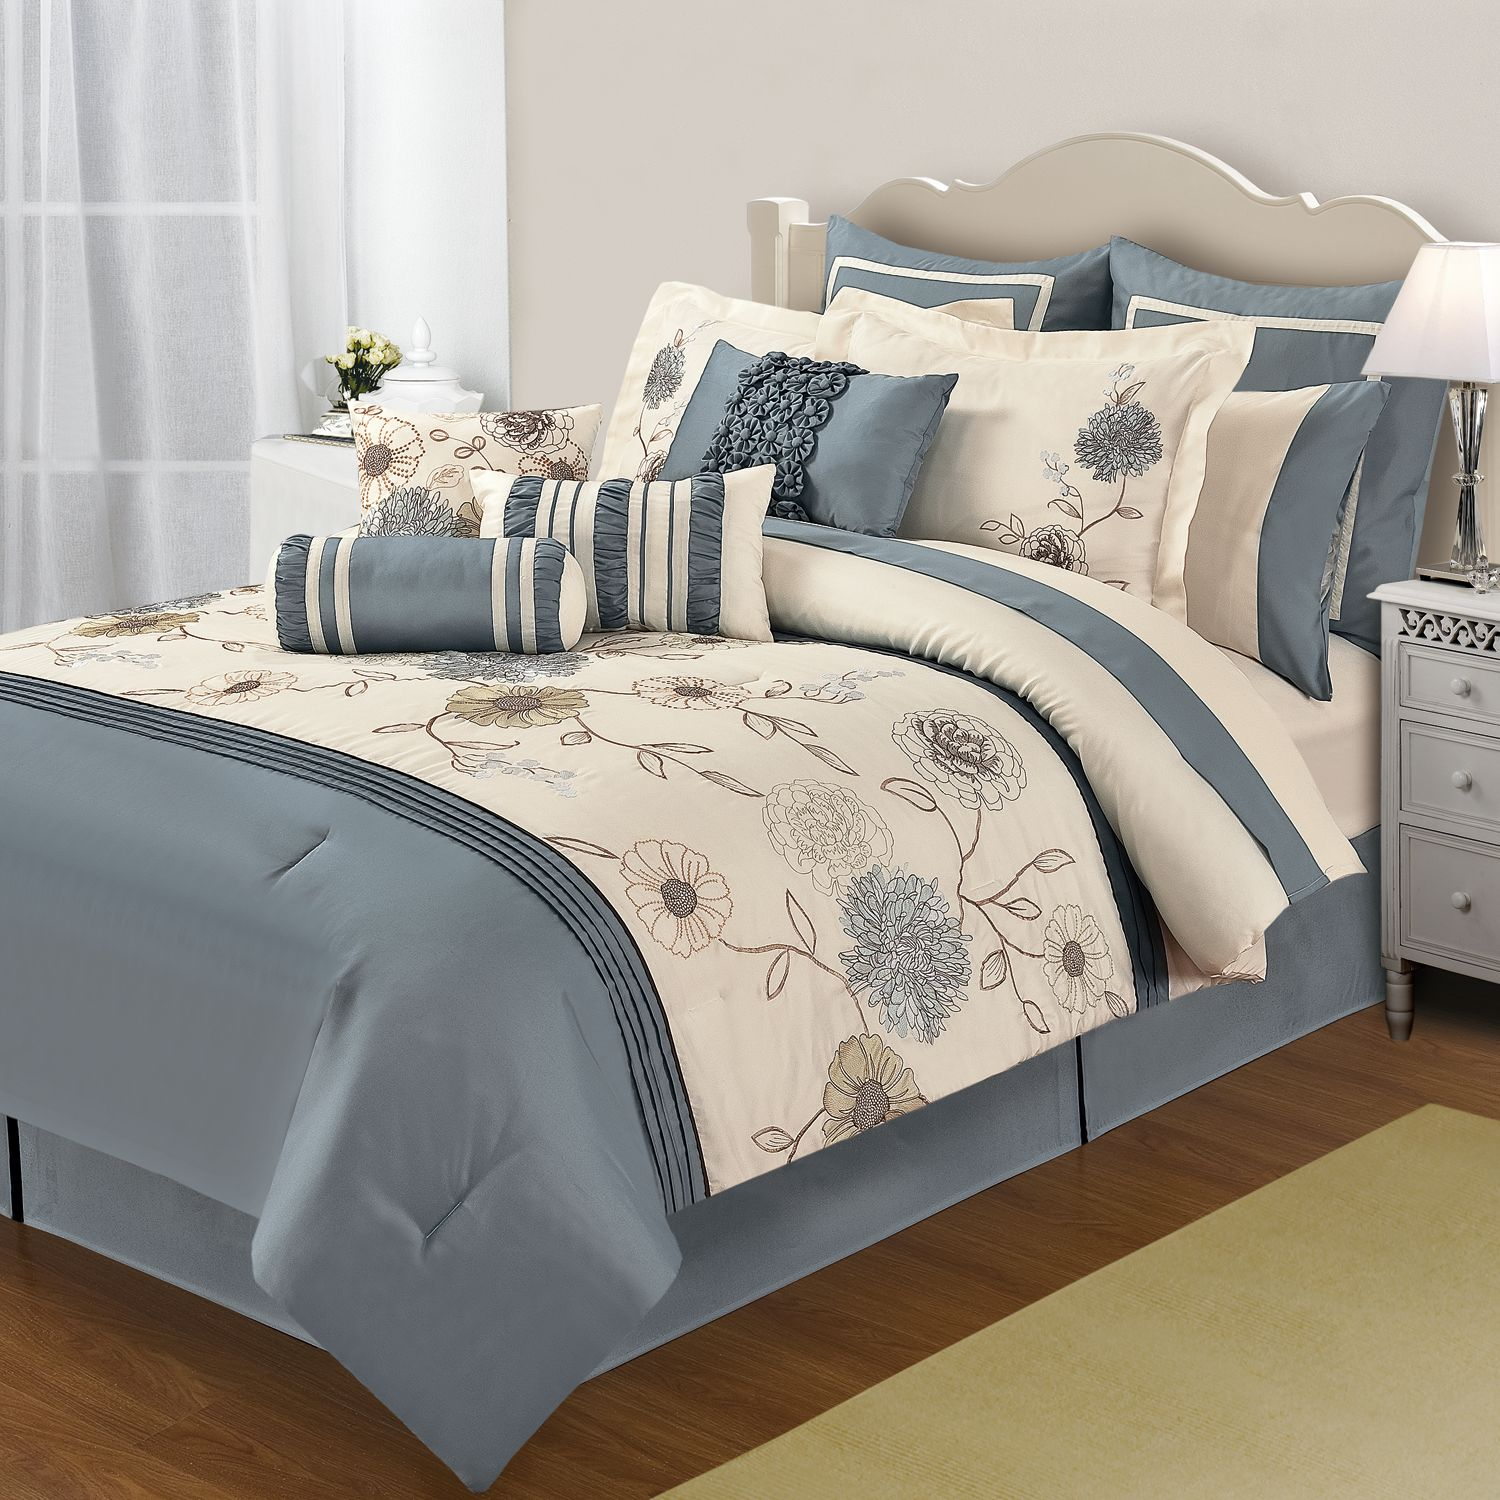 Trend Bed Set Queen